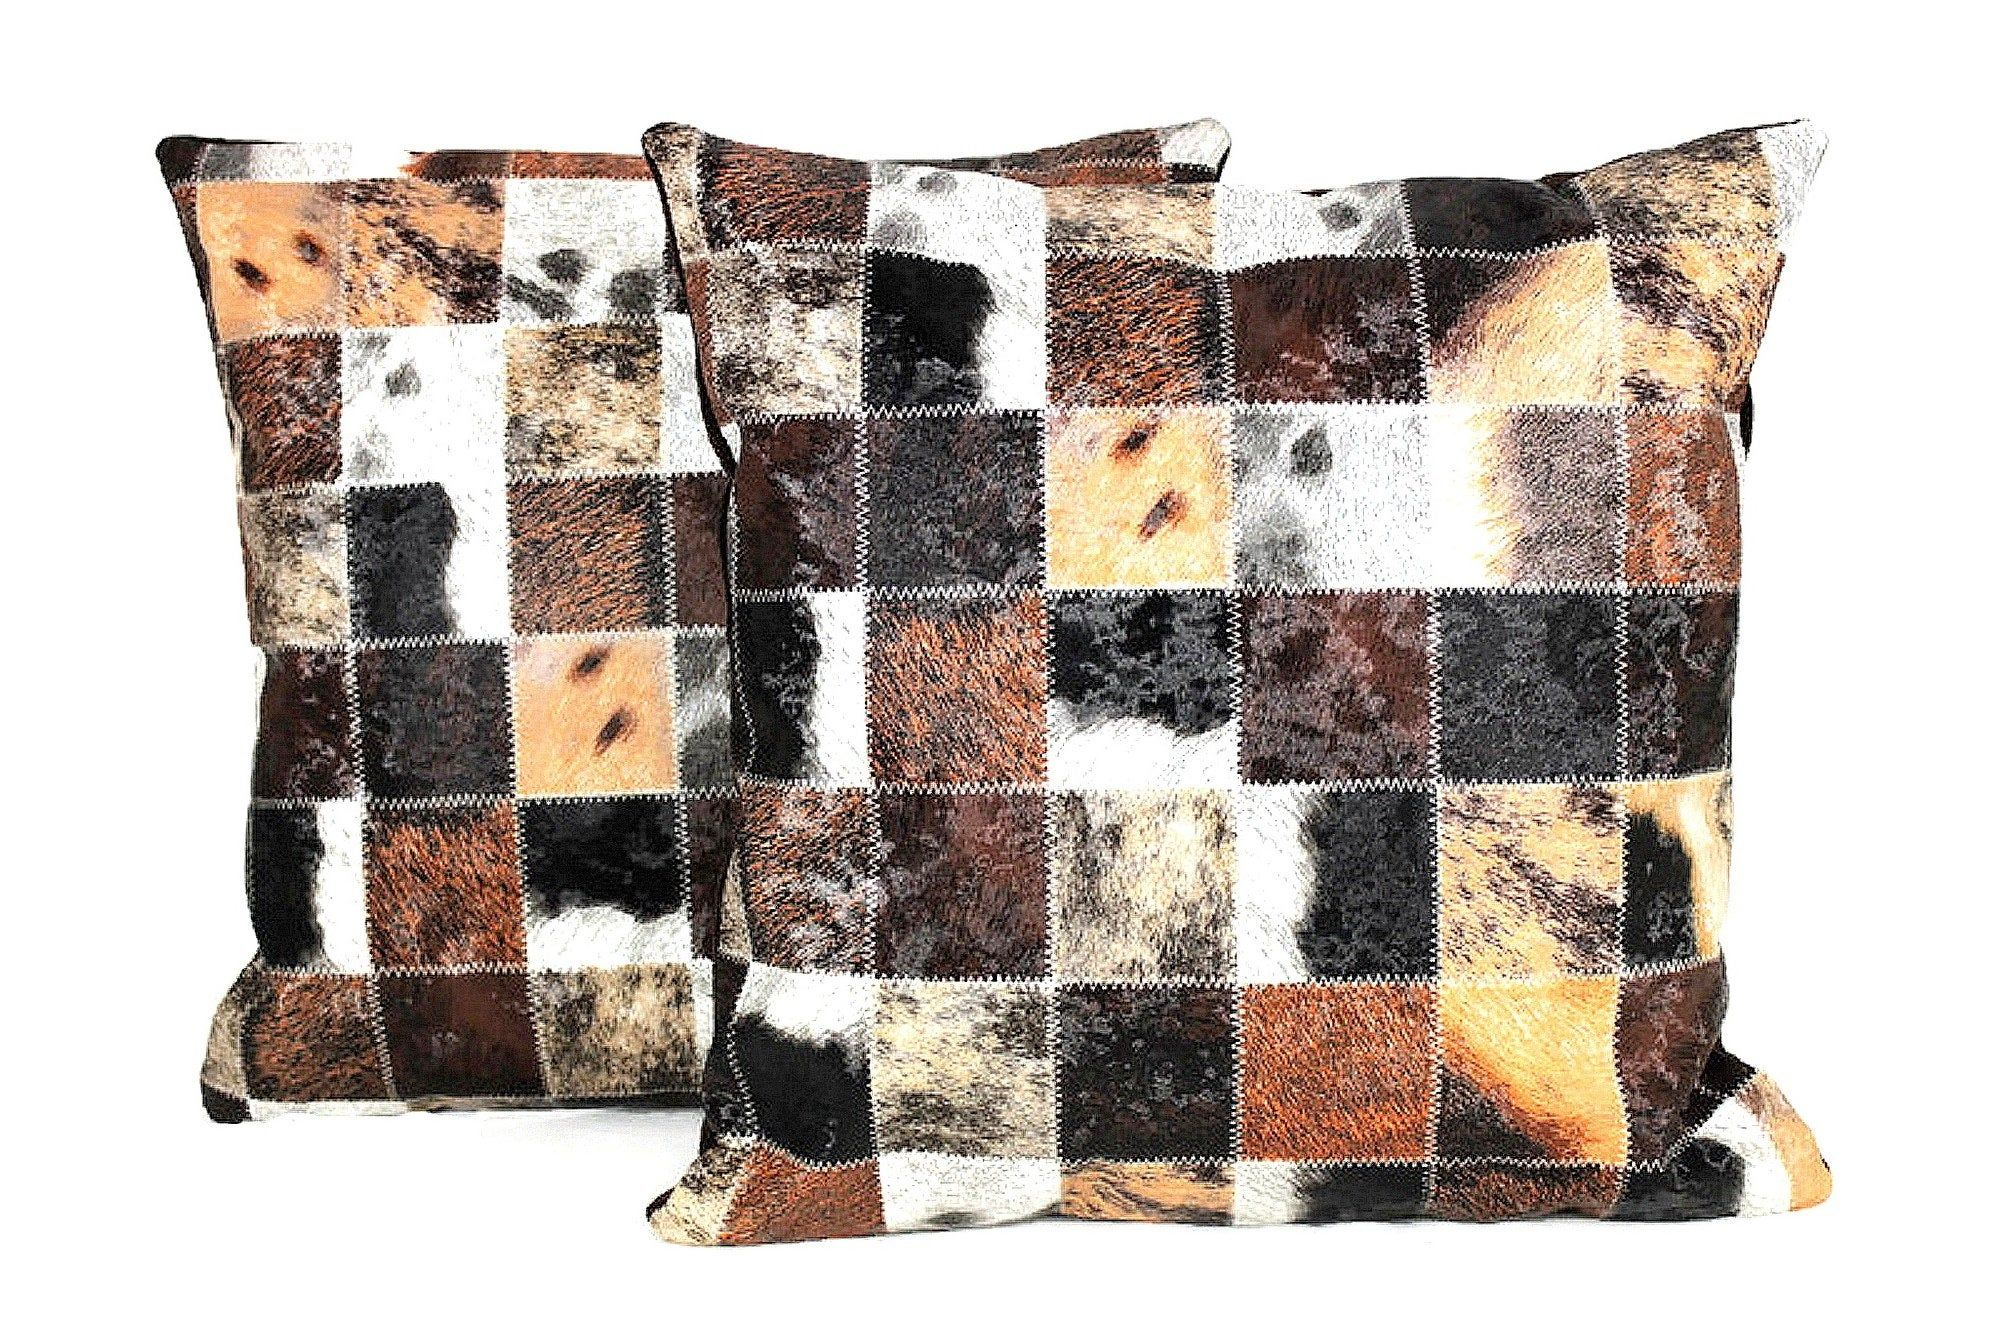 Cow print patchwork pillow cover faux leather couch throw